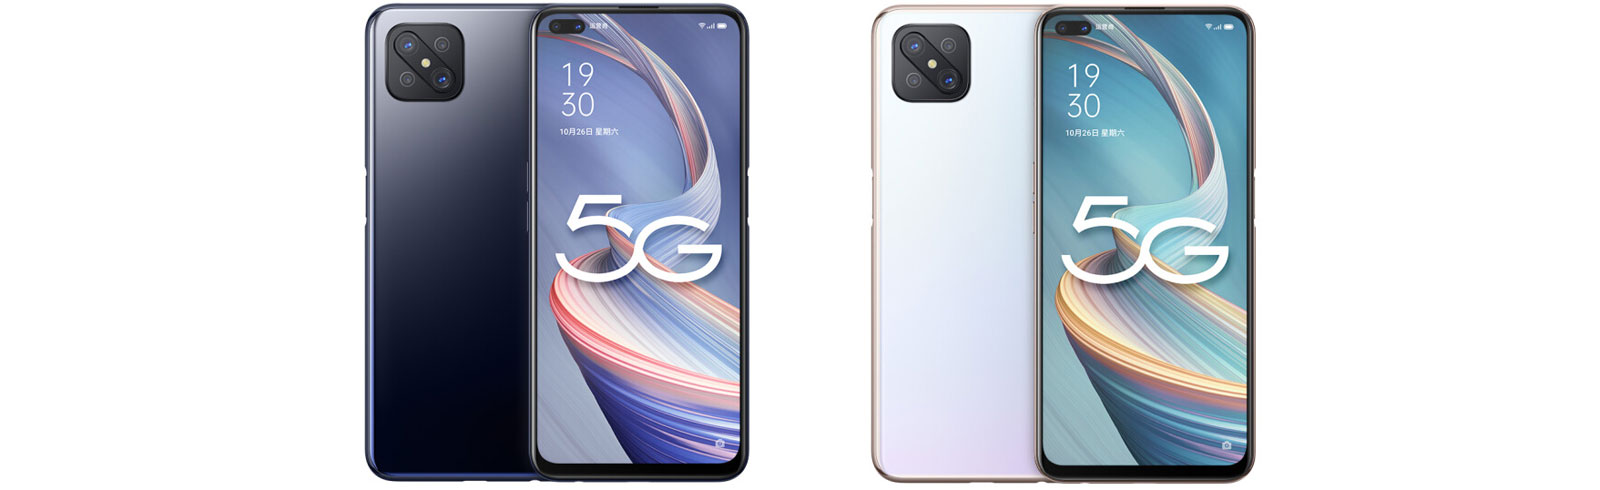 Oppo A92s is officially launched, is the first smartphone with the MediaTek Dimensity 800 chipset